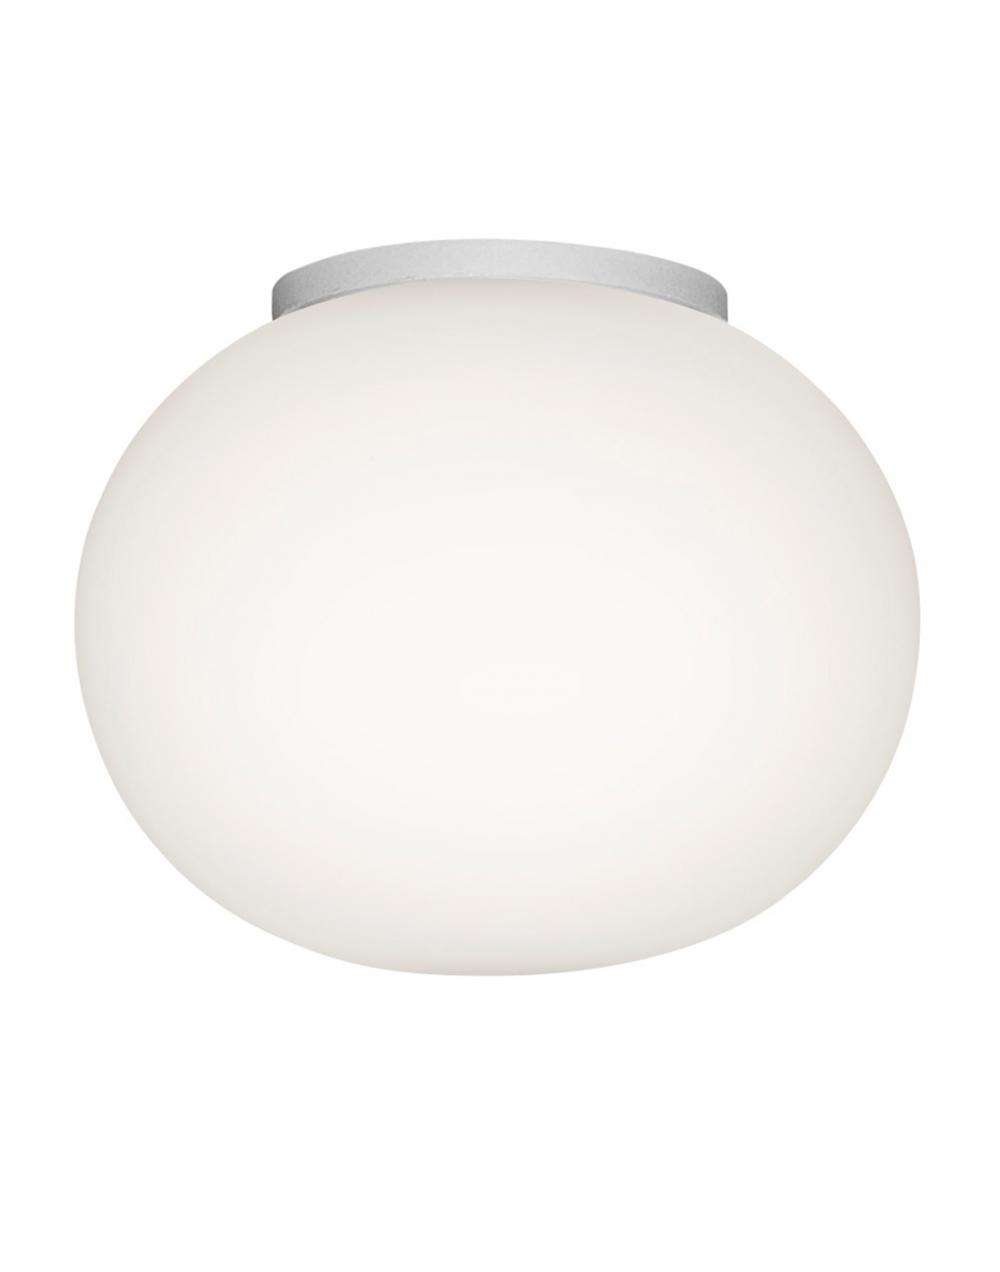 Mini Glo-Ball wall / ceiling light